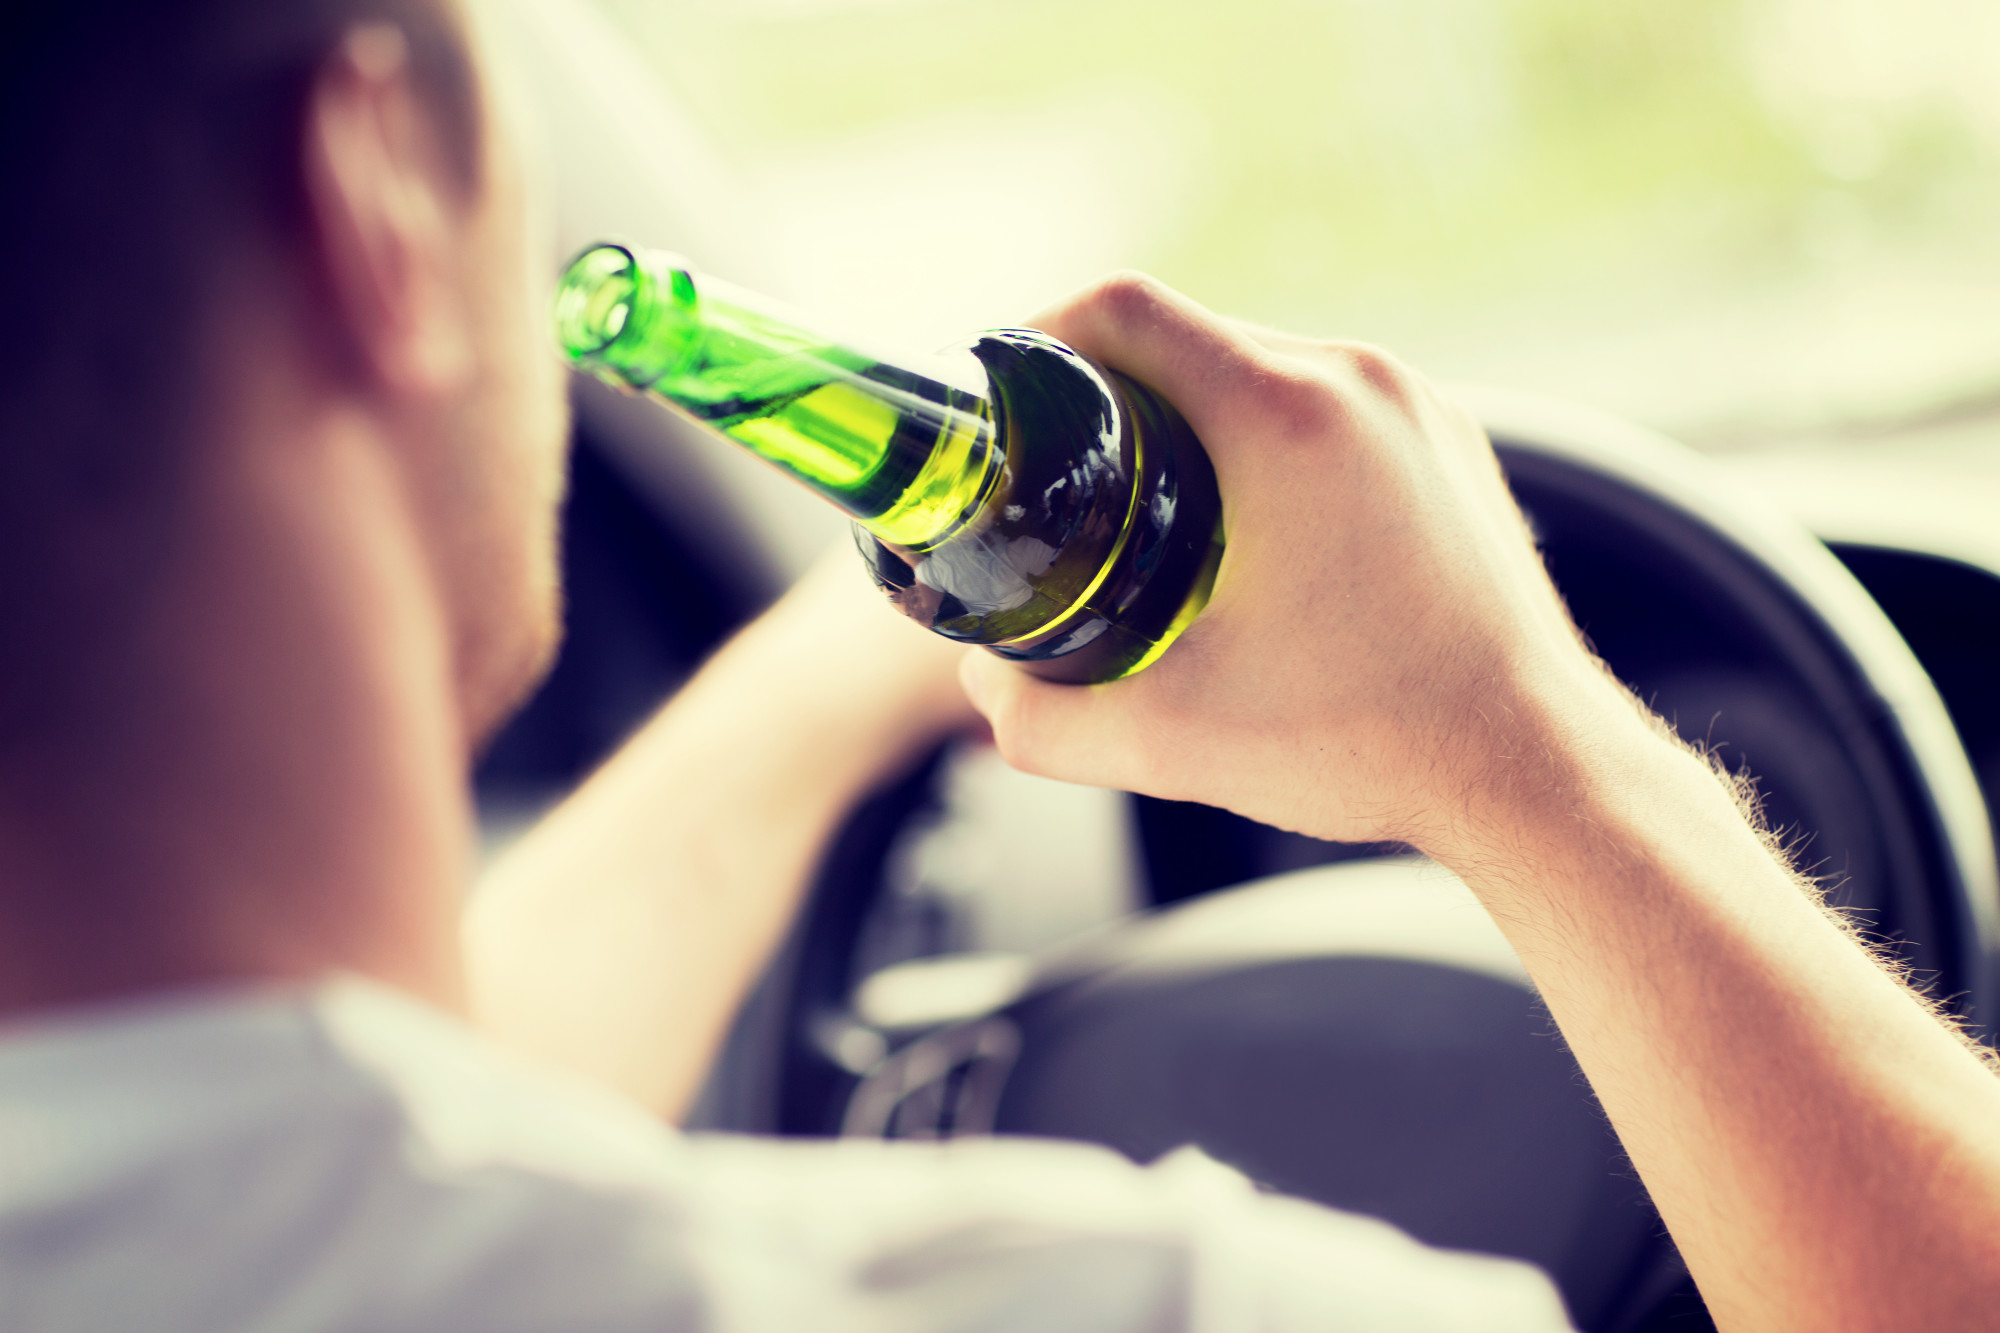 3rd DWI Offense in Austin TX. Here's What You Need to Do Right Now